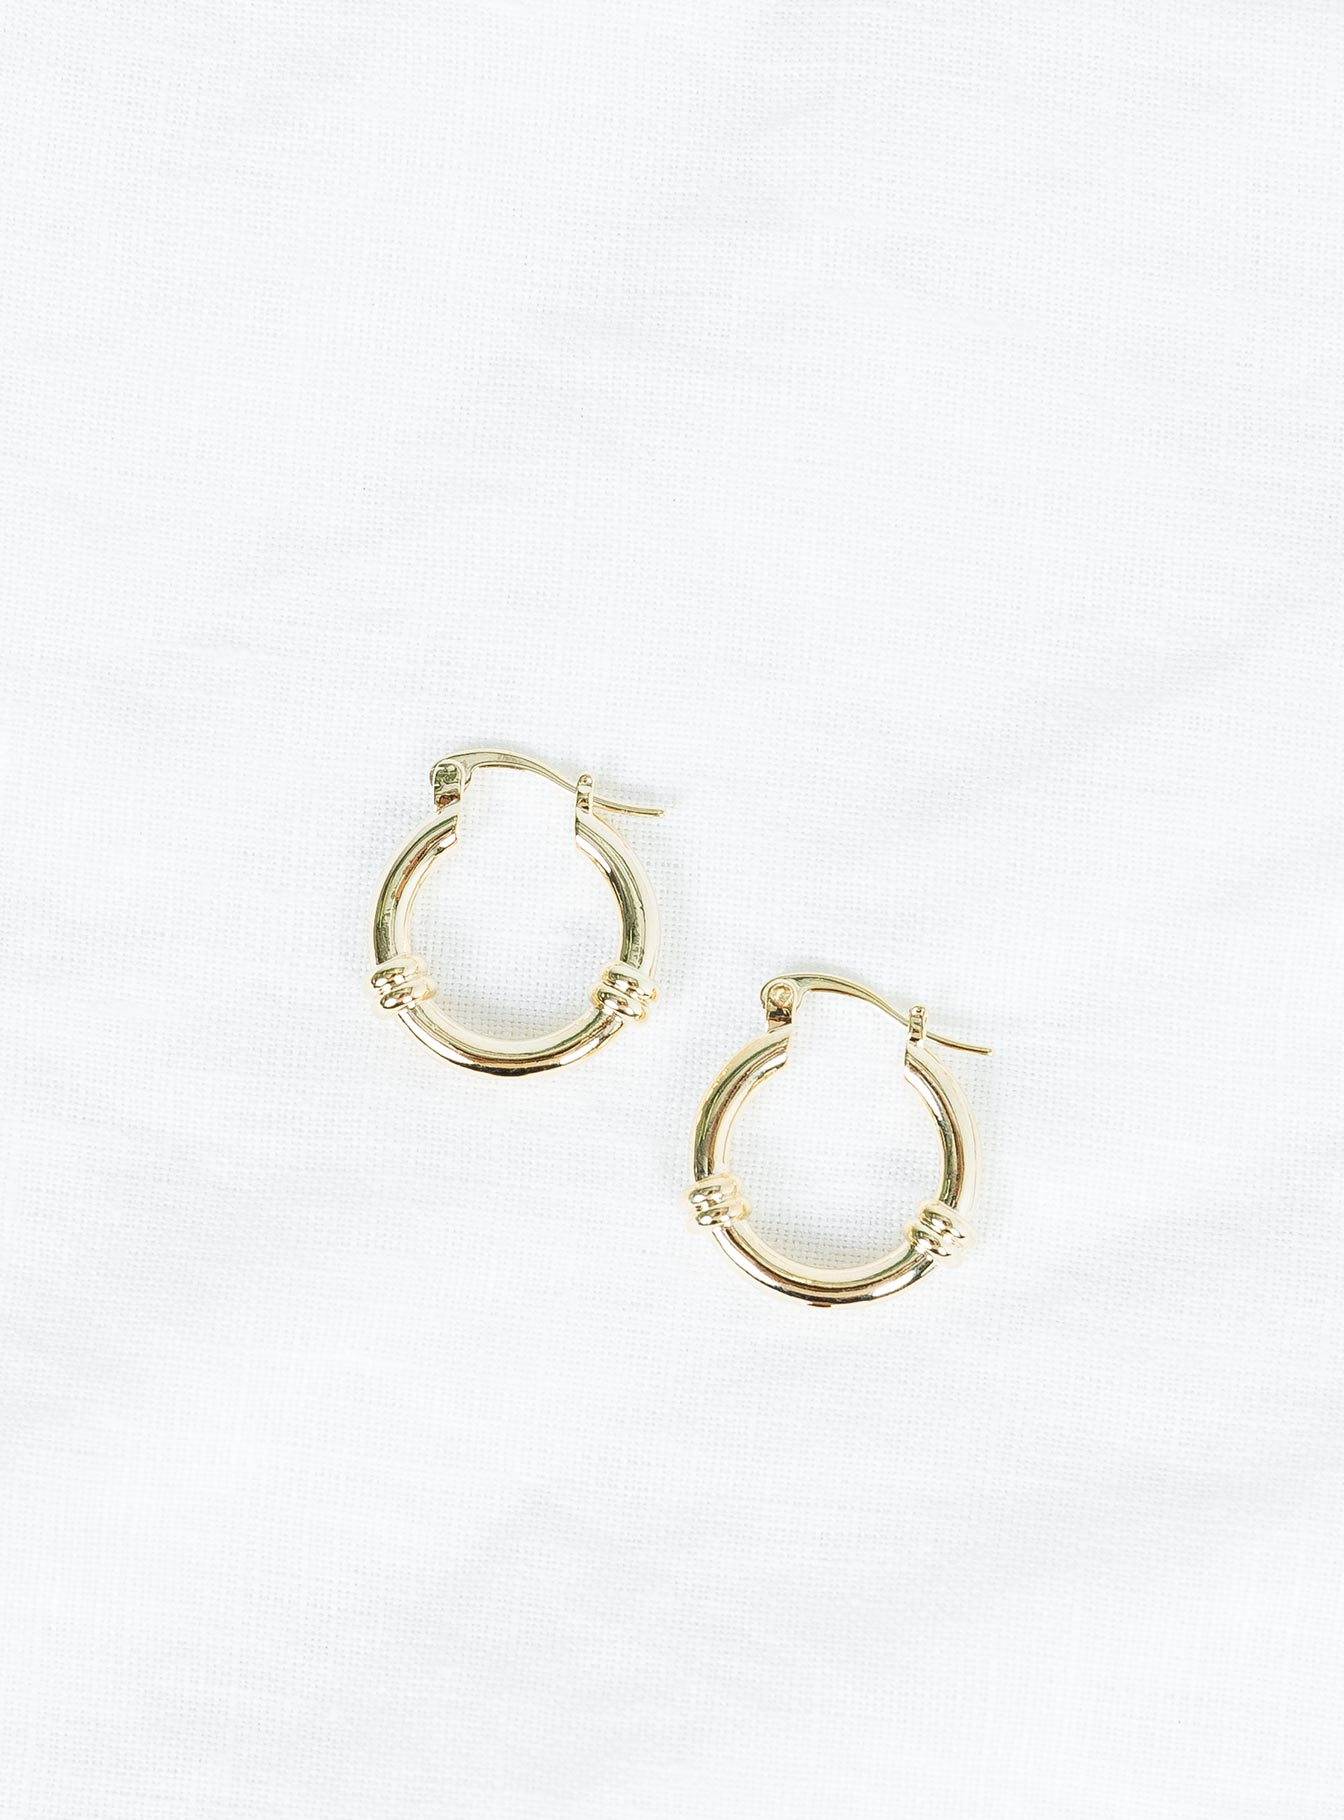 The Hali Hoop Earrings